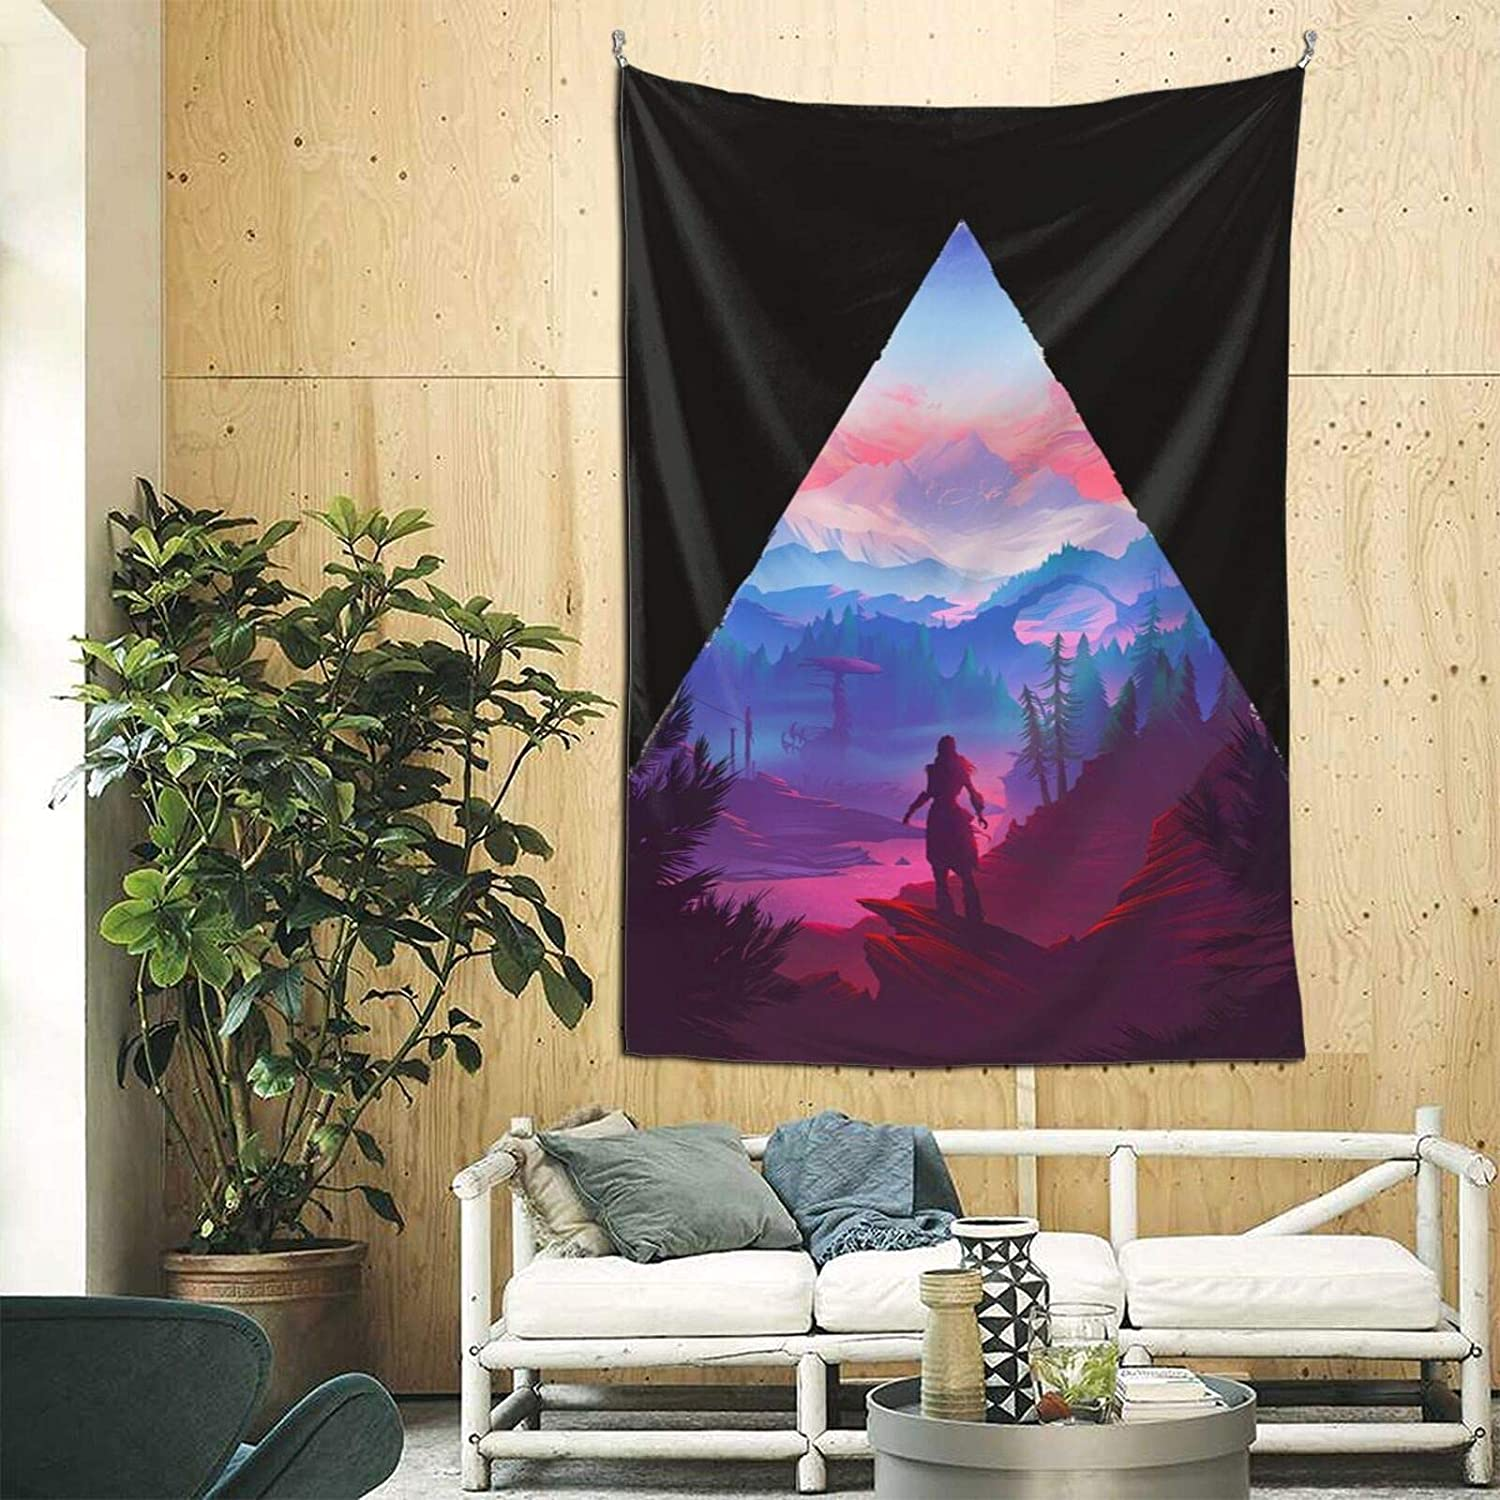 BVigil Horizon Zero Dawn Funny Anime Wall Hanging Art Print Poster Tapestry Home Decoration Blanket for Bedroom Living Room Dorm Decoration Tapestries Machine Washable 90?60 Inch